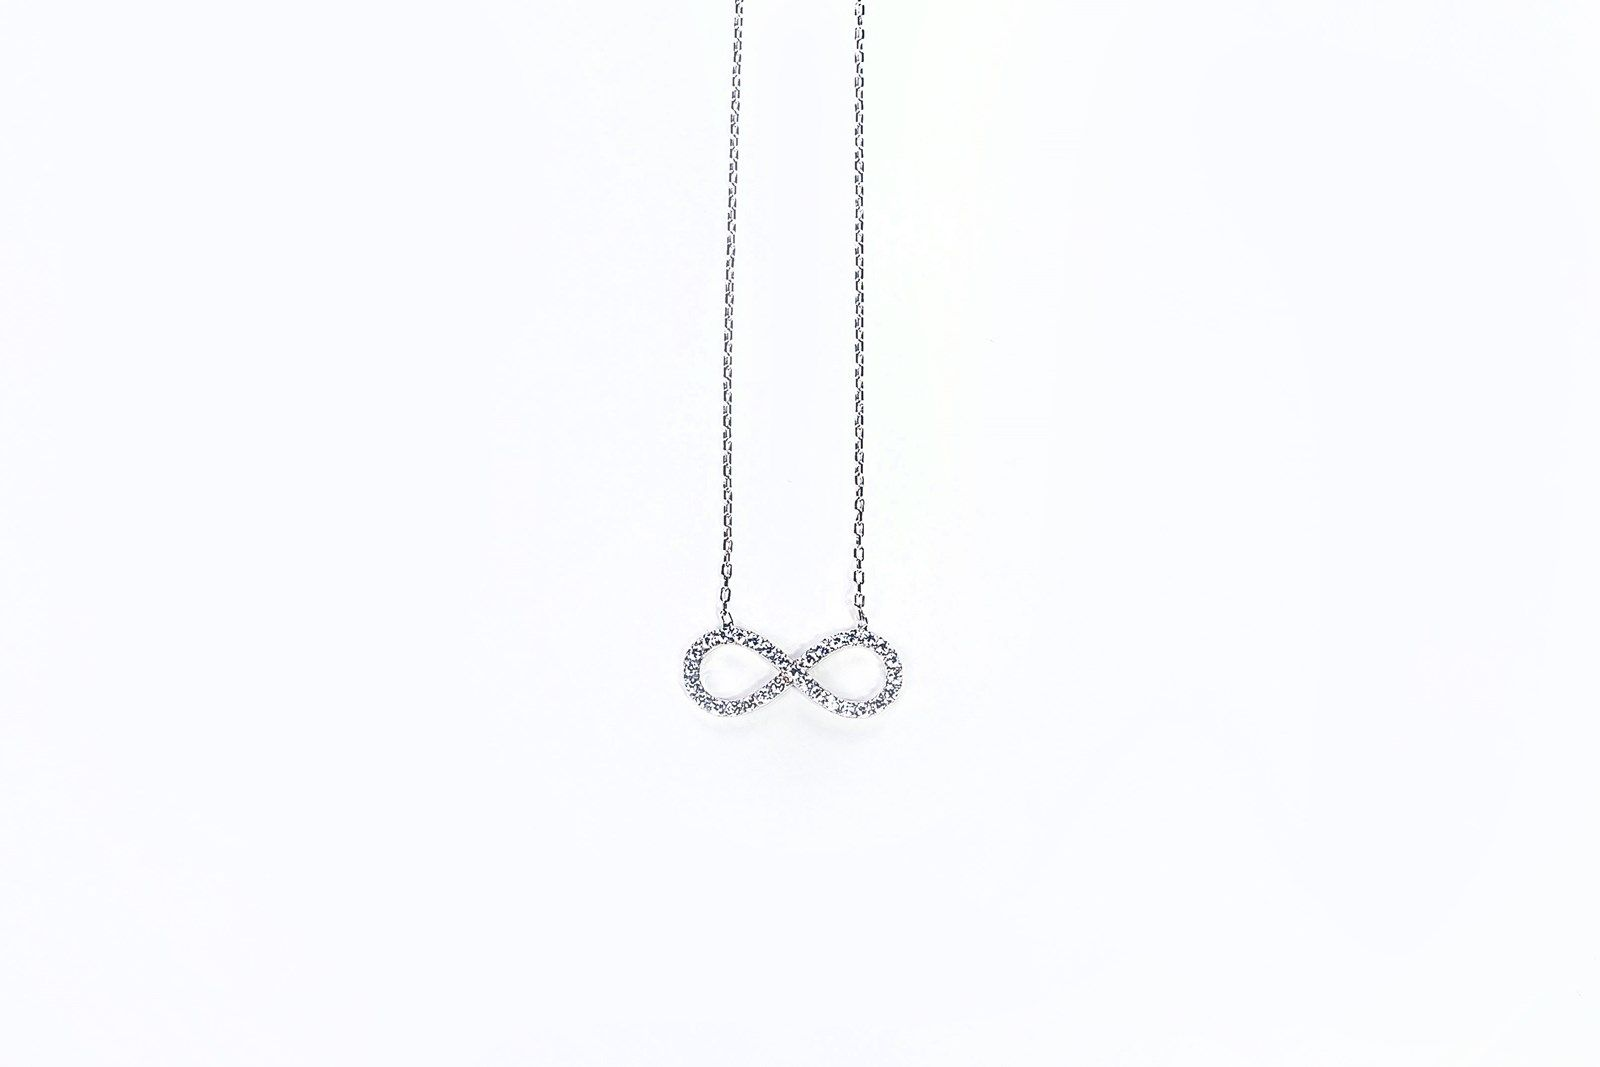 2198 at miliajewelry the meaning behind the infinity 2198 at miliajewelry the meaning behind the infinity symbol is empowerment eternity and everlasting love the waves within the infinity symbol biocorpaavc